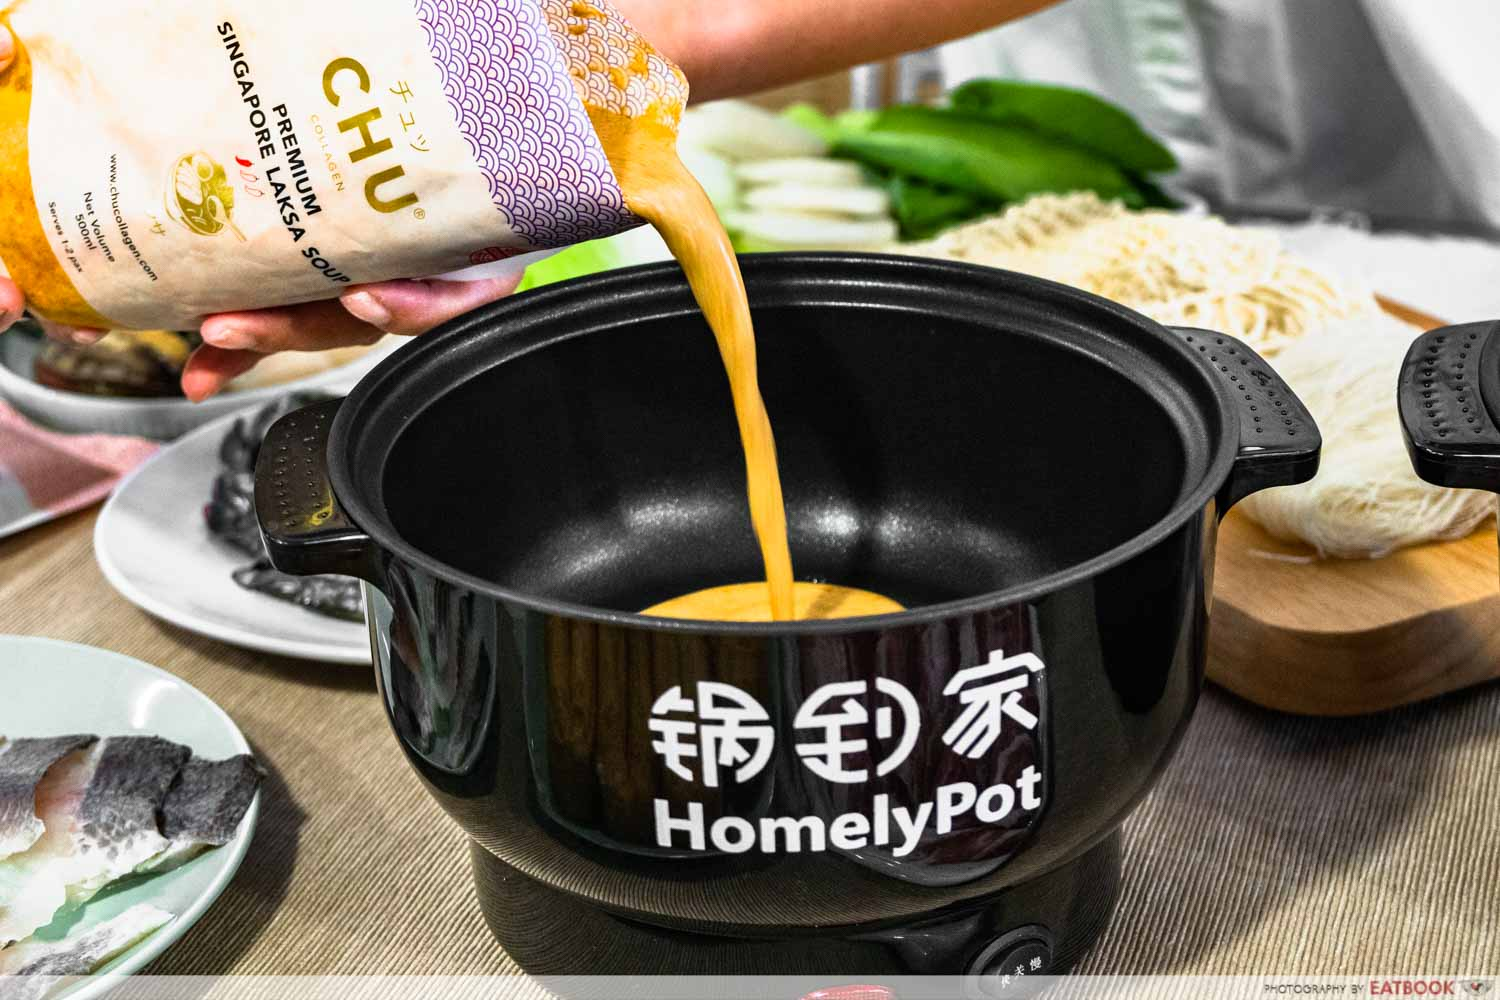 Homelypot chu collagen laksa soup - pouring